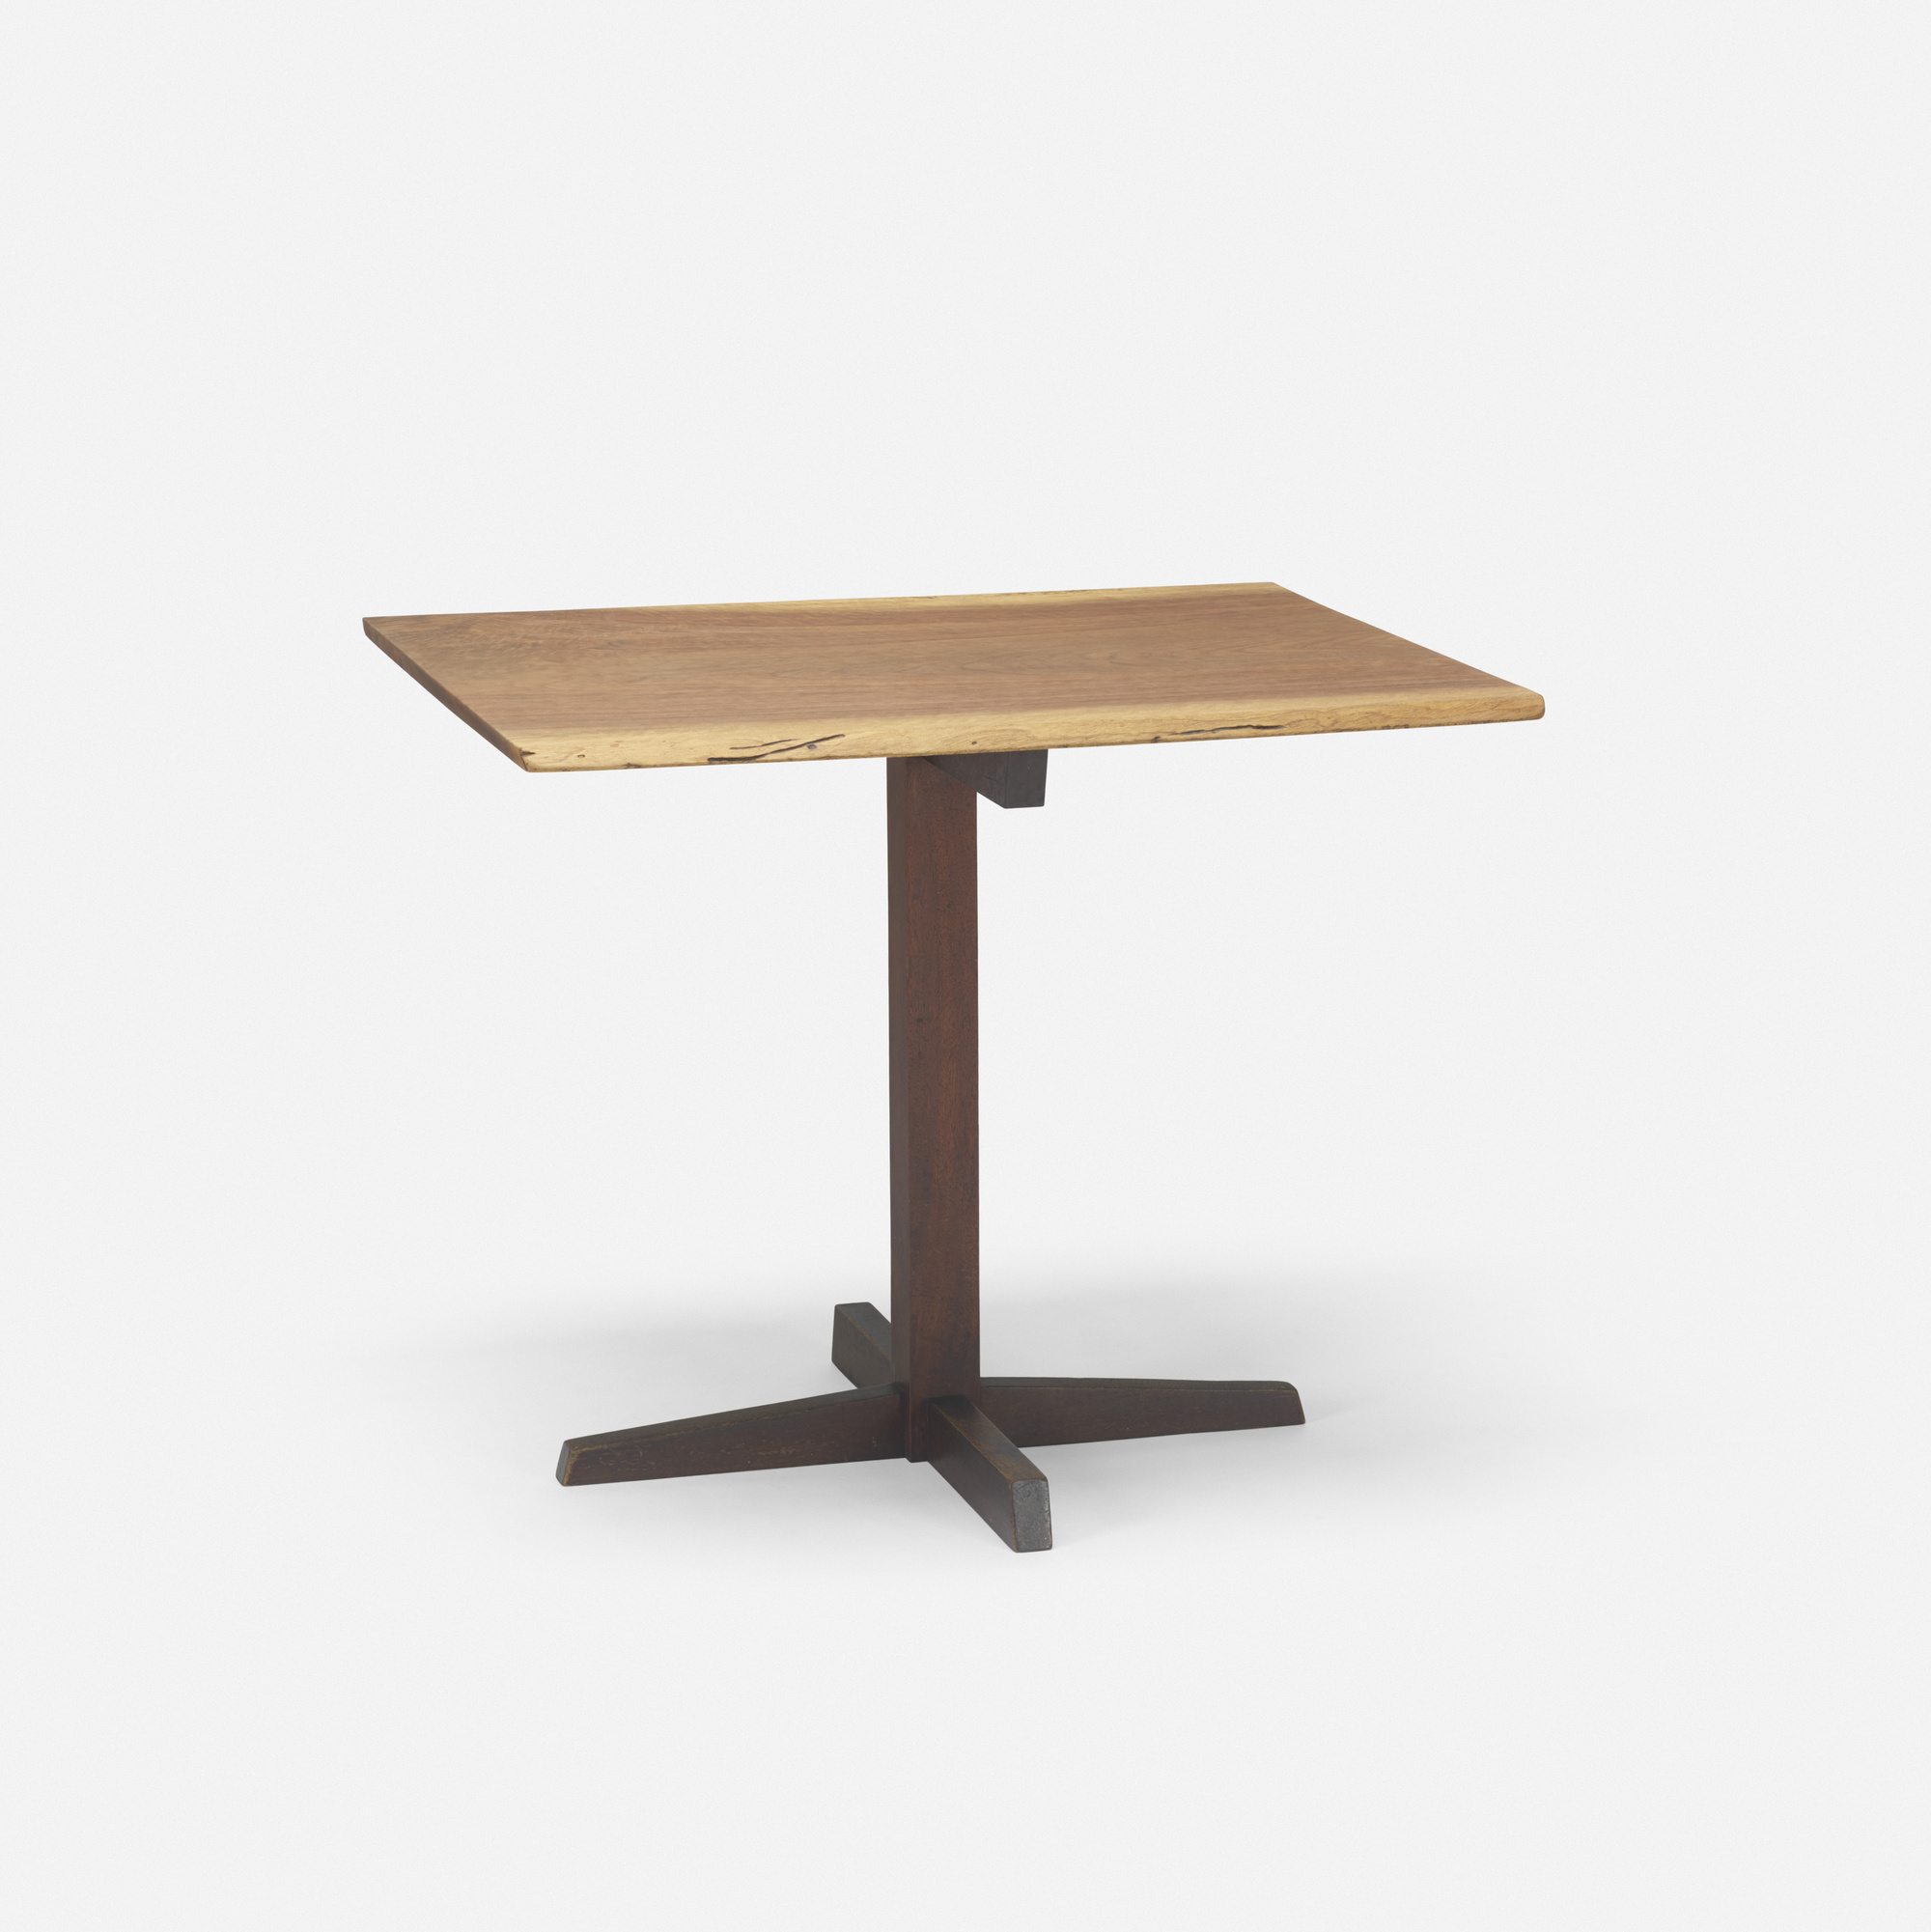 159: George Nakashima / Pedestal table (1 of 2)